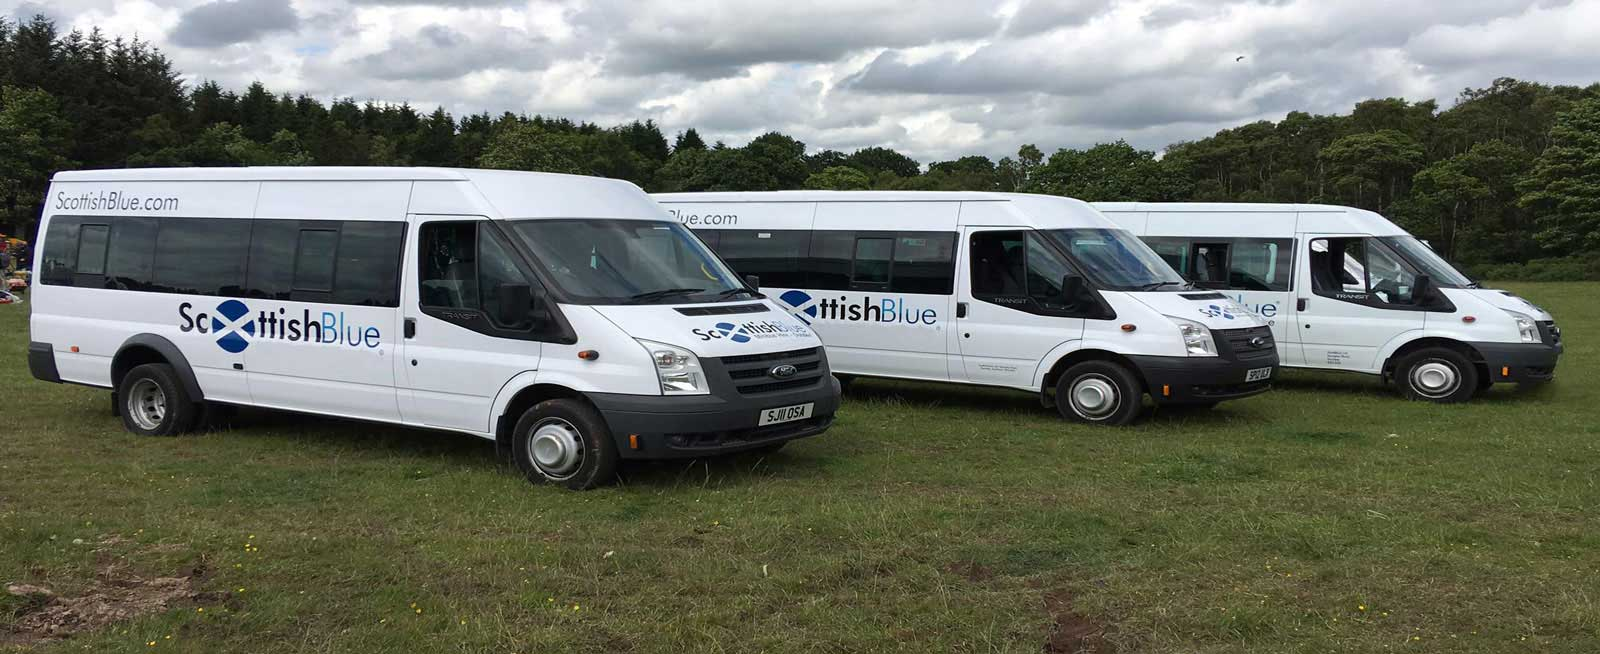 Scottish Blue Minibus Hire